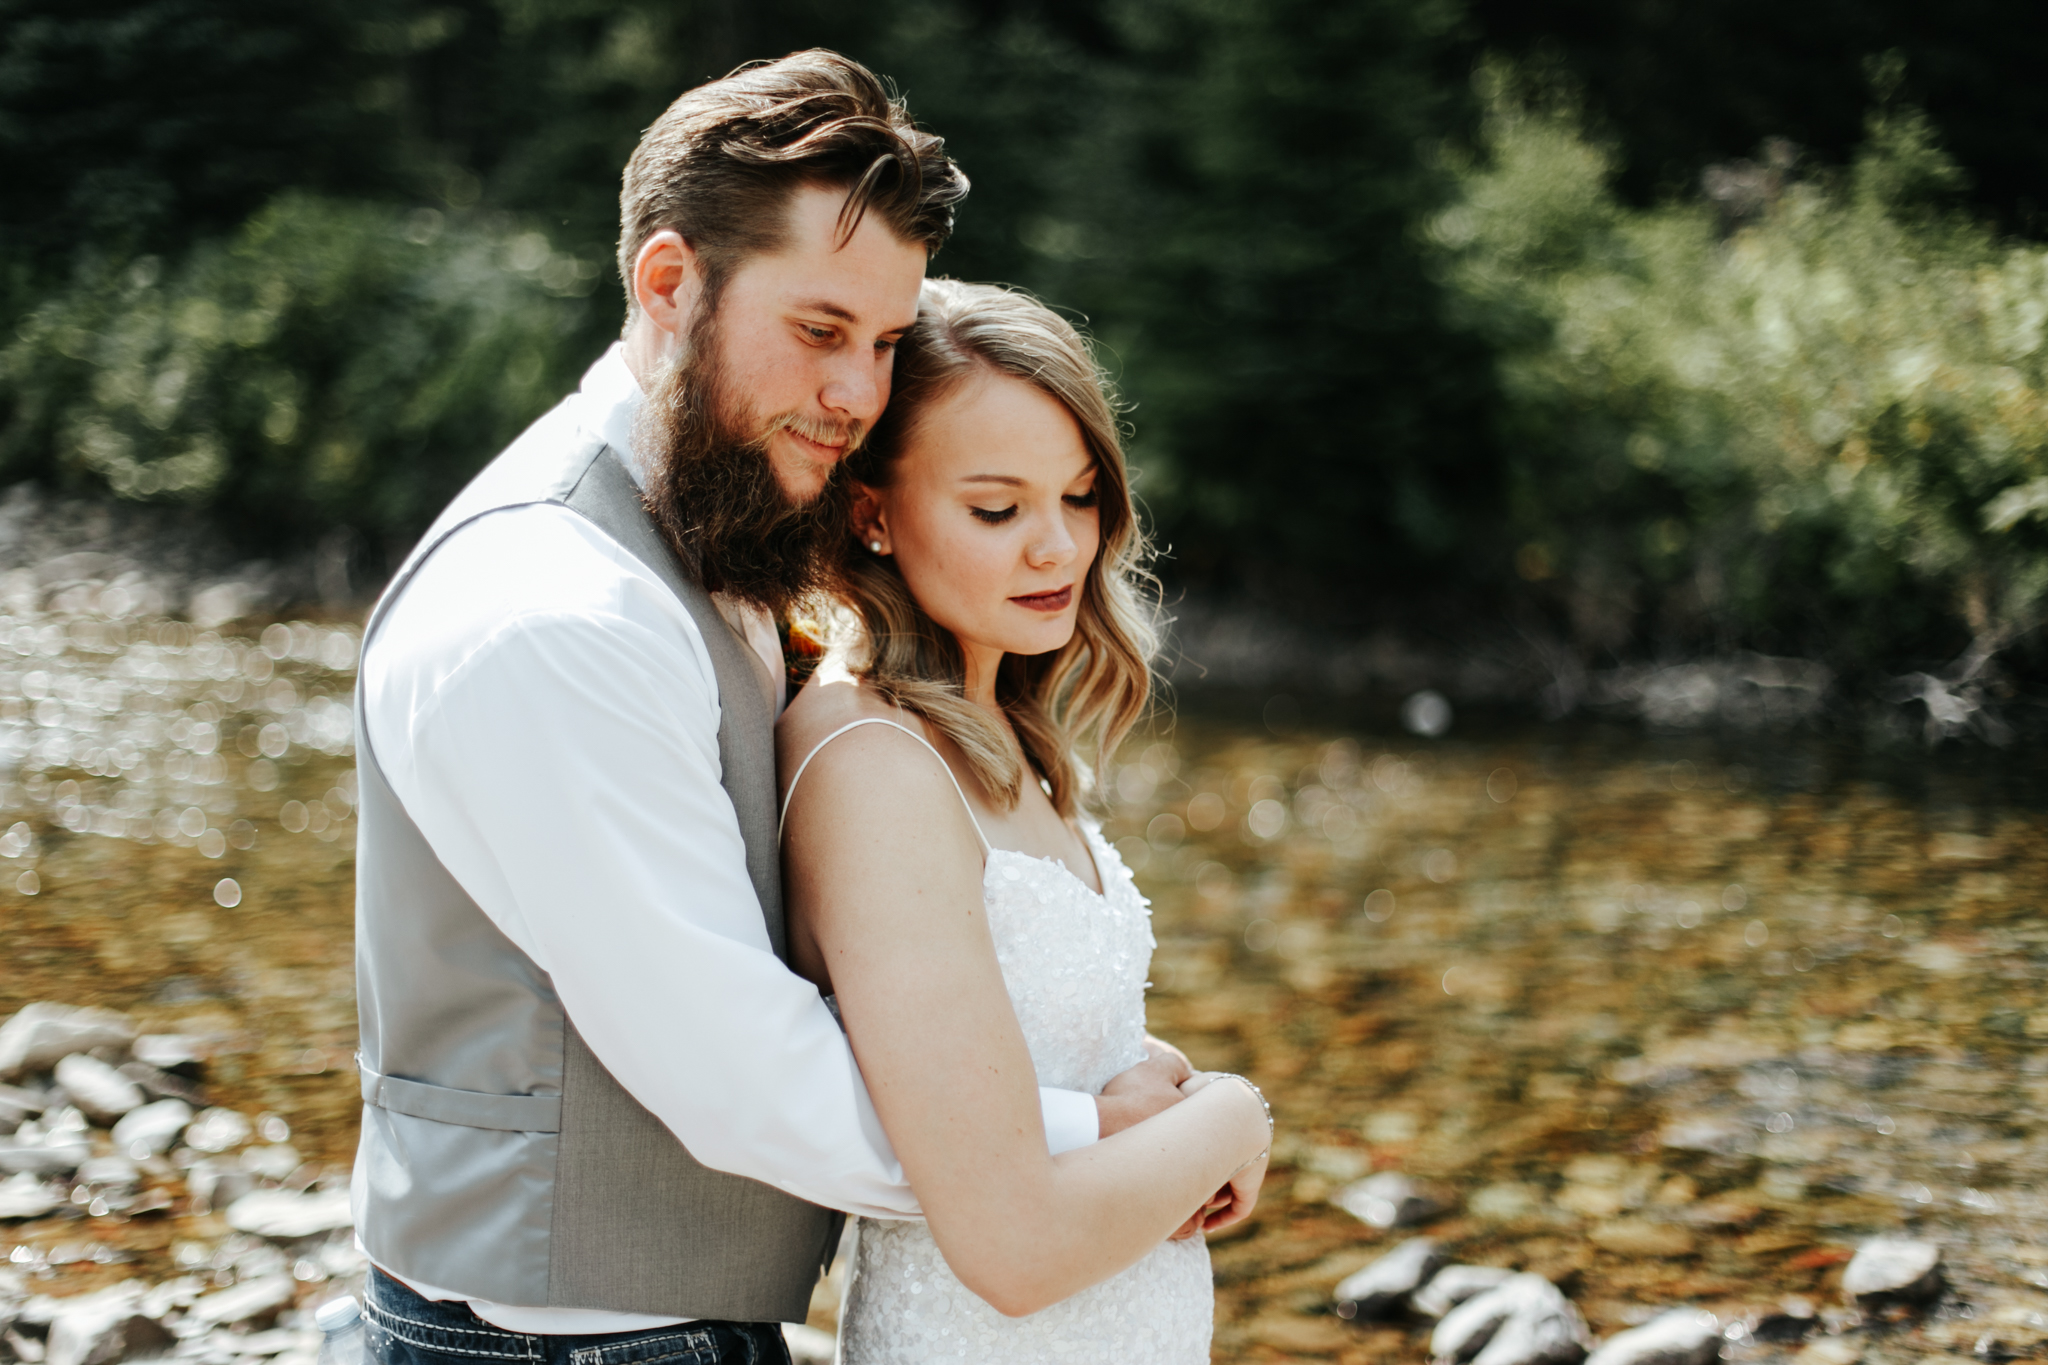 castle-mountain-wedding-photographer-love-and-be-loved-photography-lethbridge-pincher-creek-crowsnest-pass-yannick-rylee-photo-image-picture-122.jpg